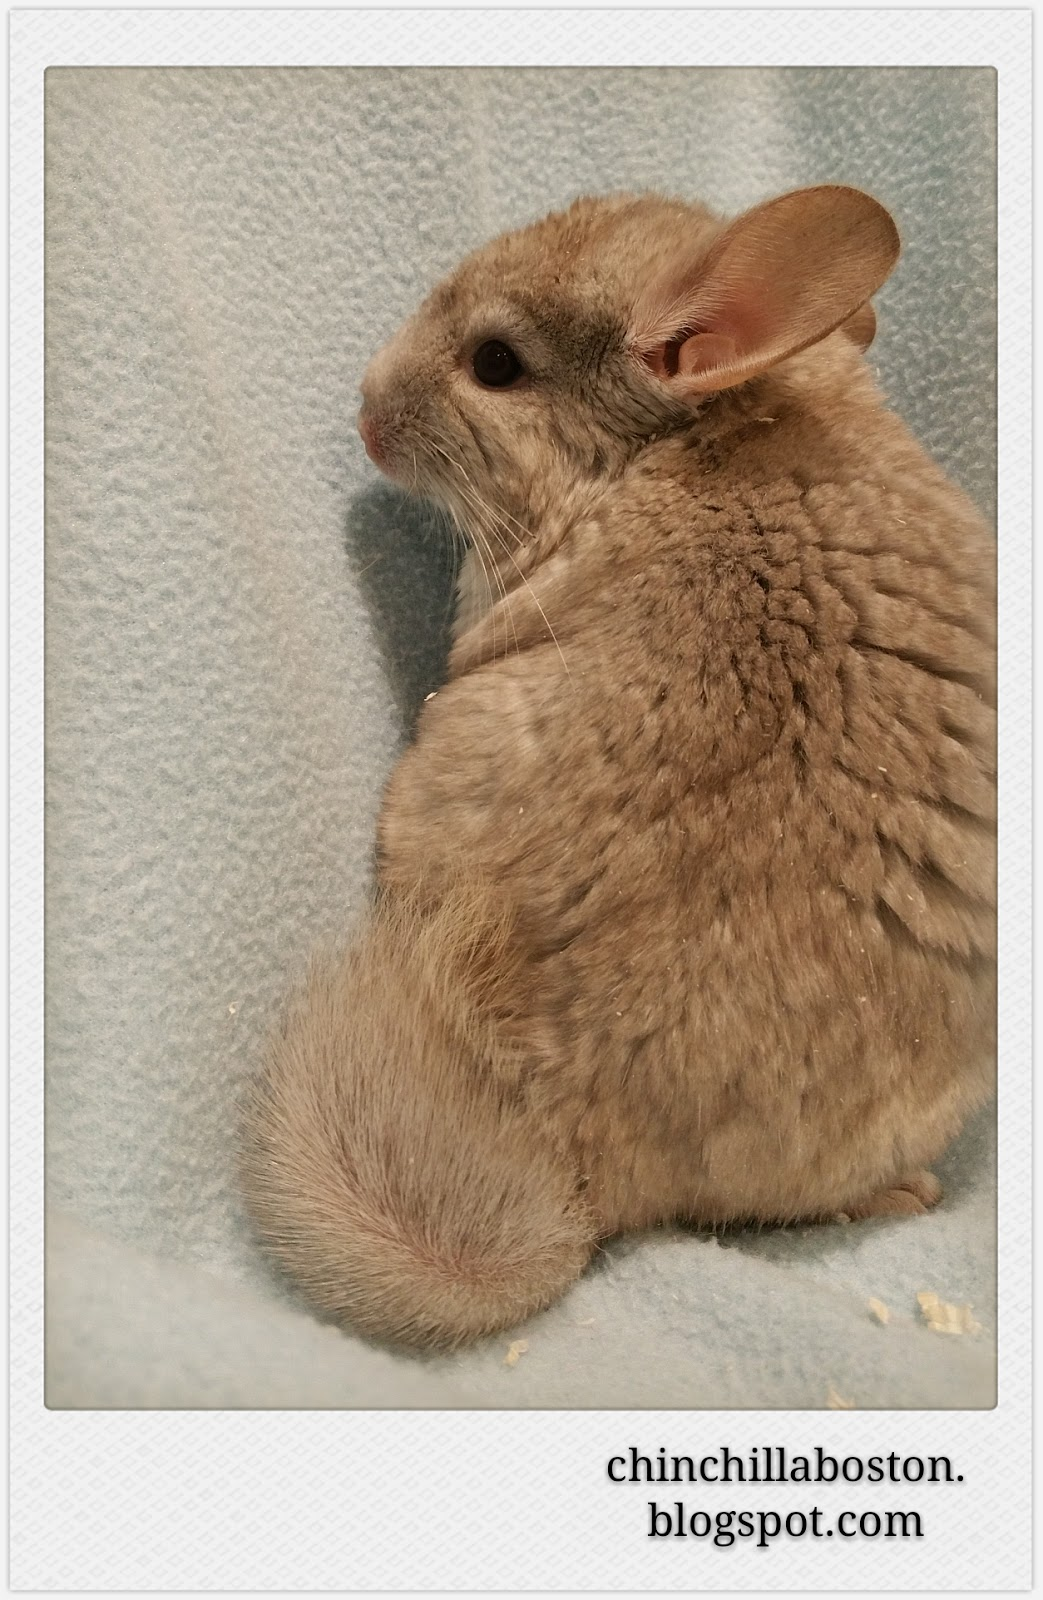 Chinchilla Boston: Adopted (Mooncake)